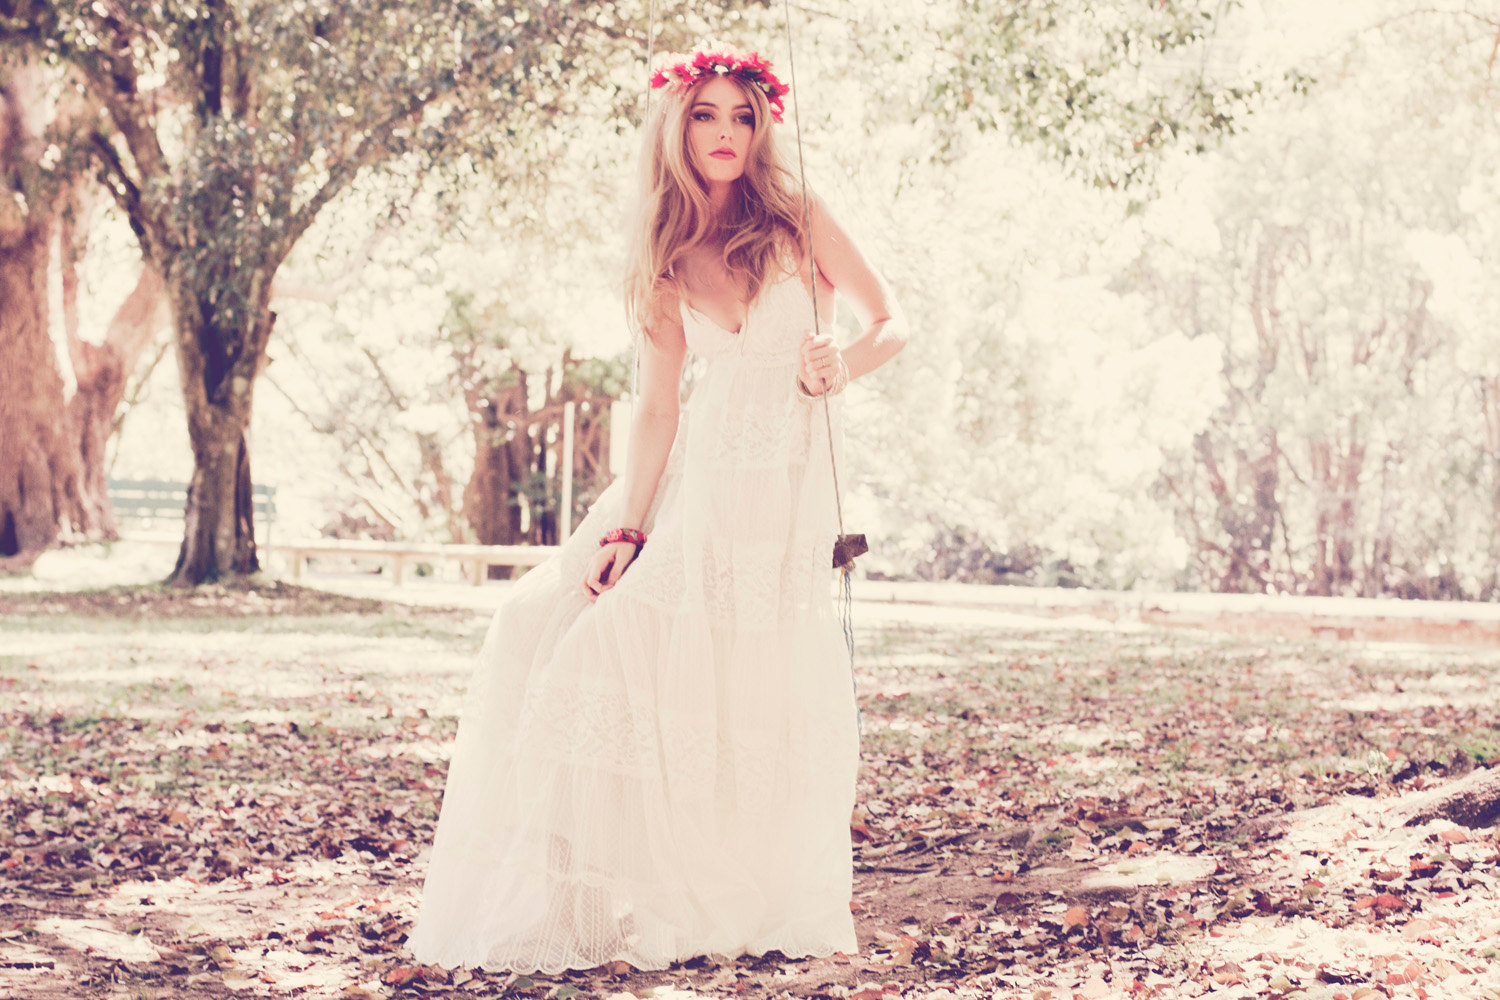 Teekidesignsbyamyoram beach boho wedding gowns via Hippie vintage wedding dresses